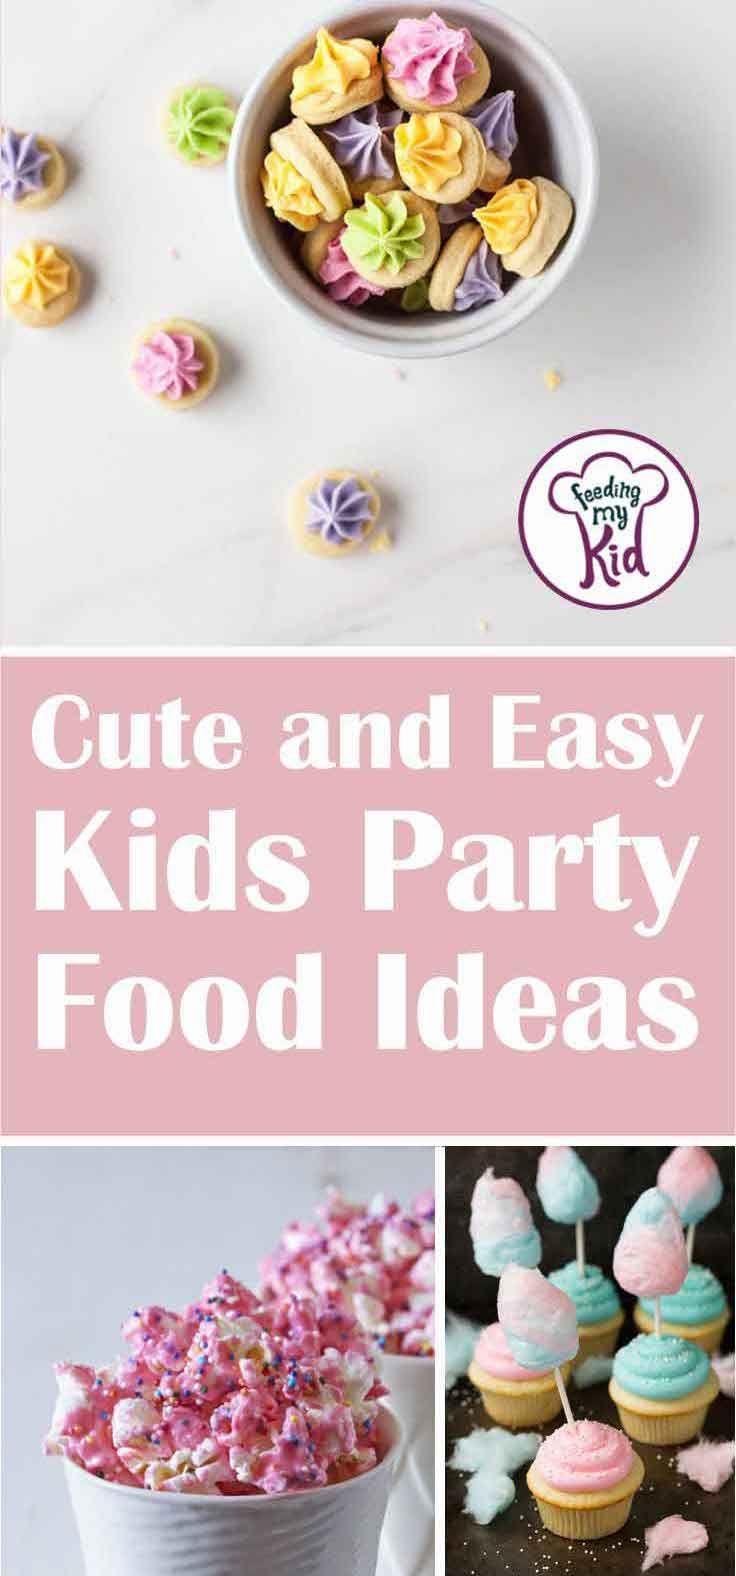 Cute and Easy Kids Party Food Ideas. Your Guests Will Love